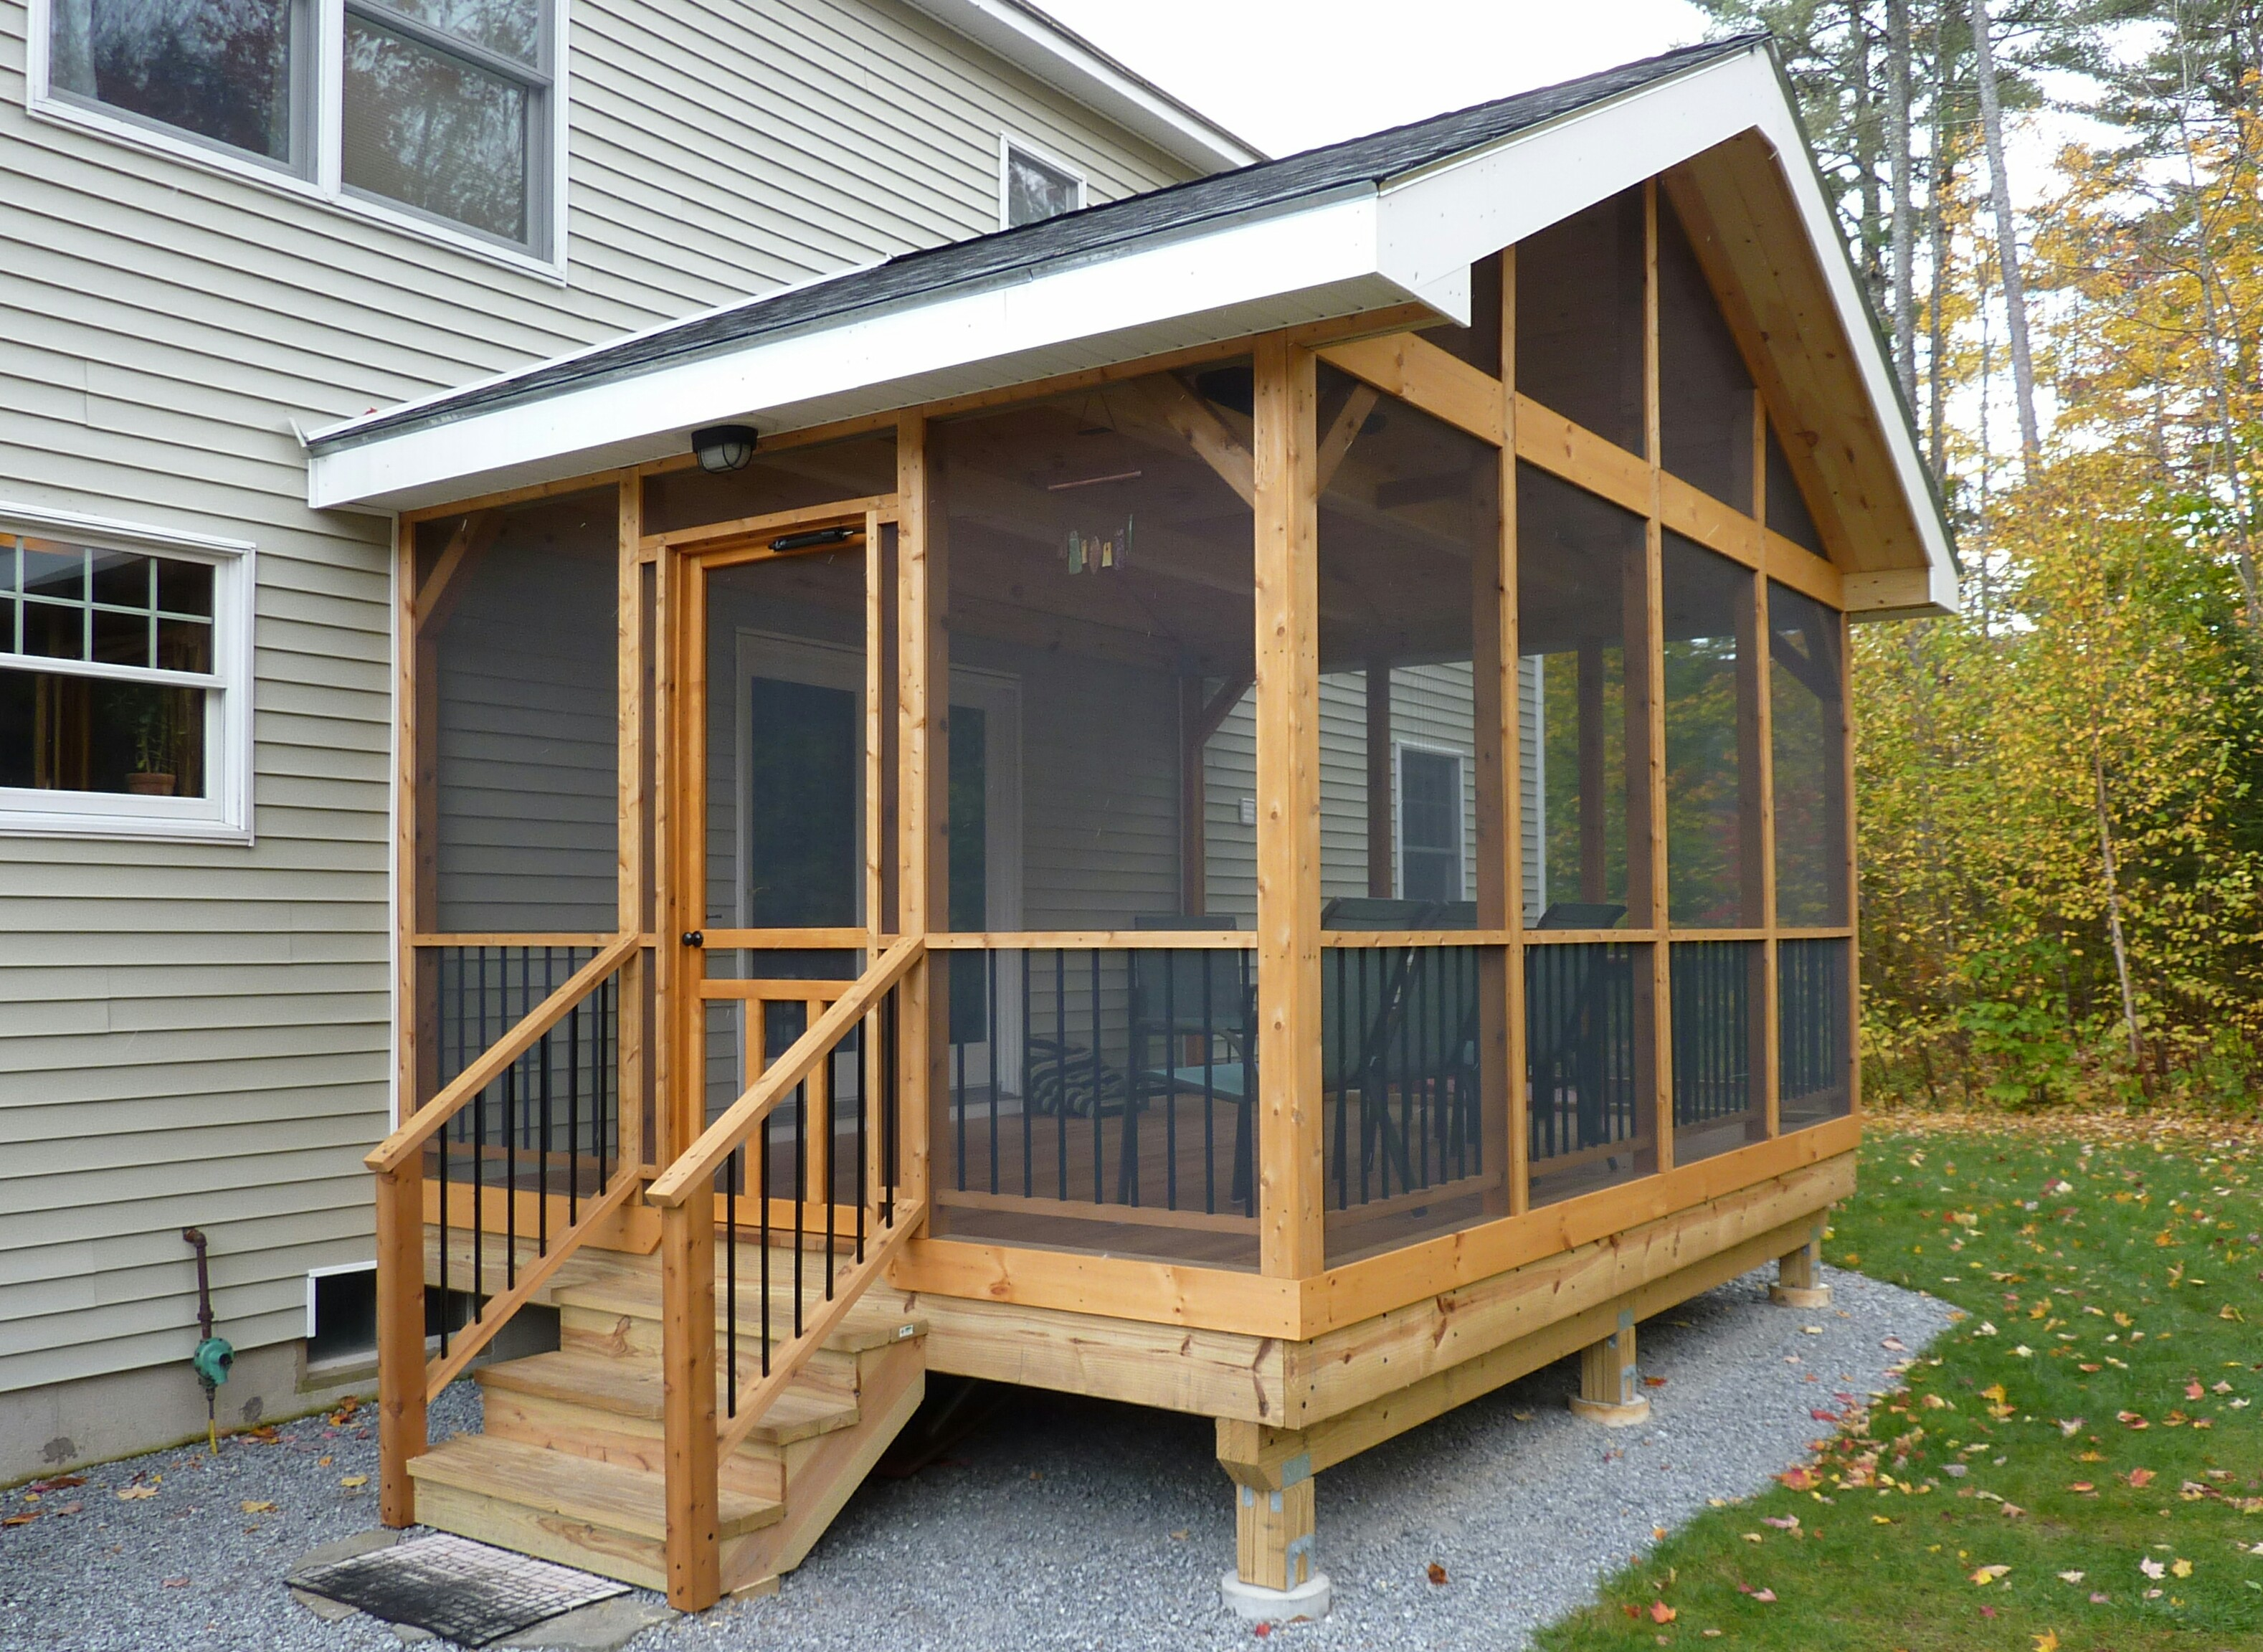 Diy Screened In Porch : Diy screened in porch learn how to screen a